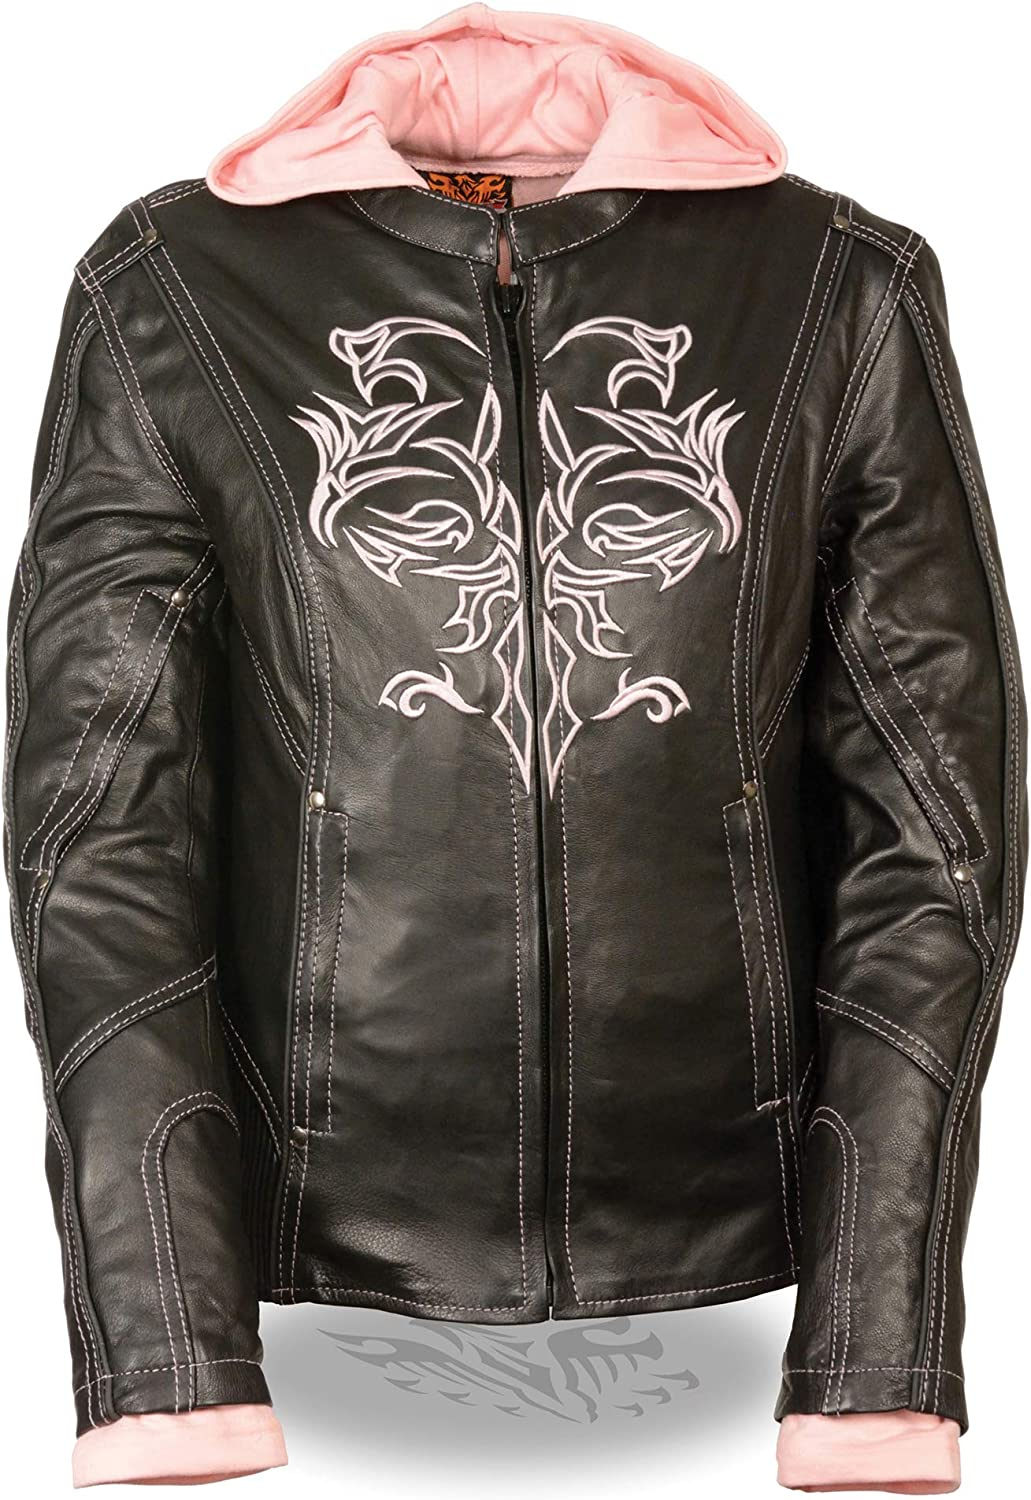 Womens 3 4 Length Leather Jacket Reflective Tribal Detail